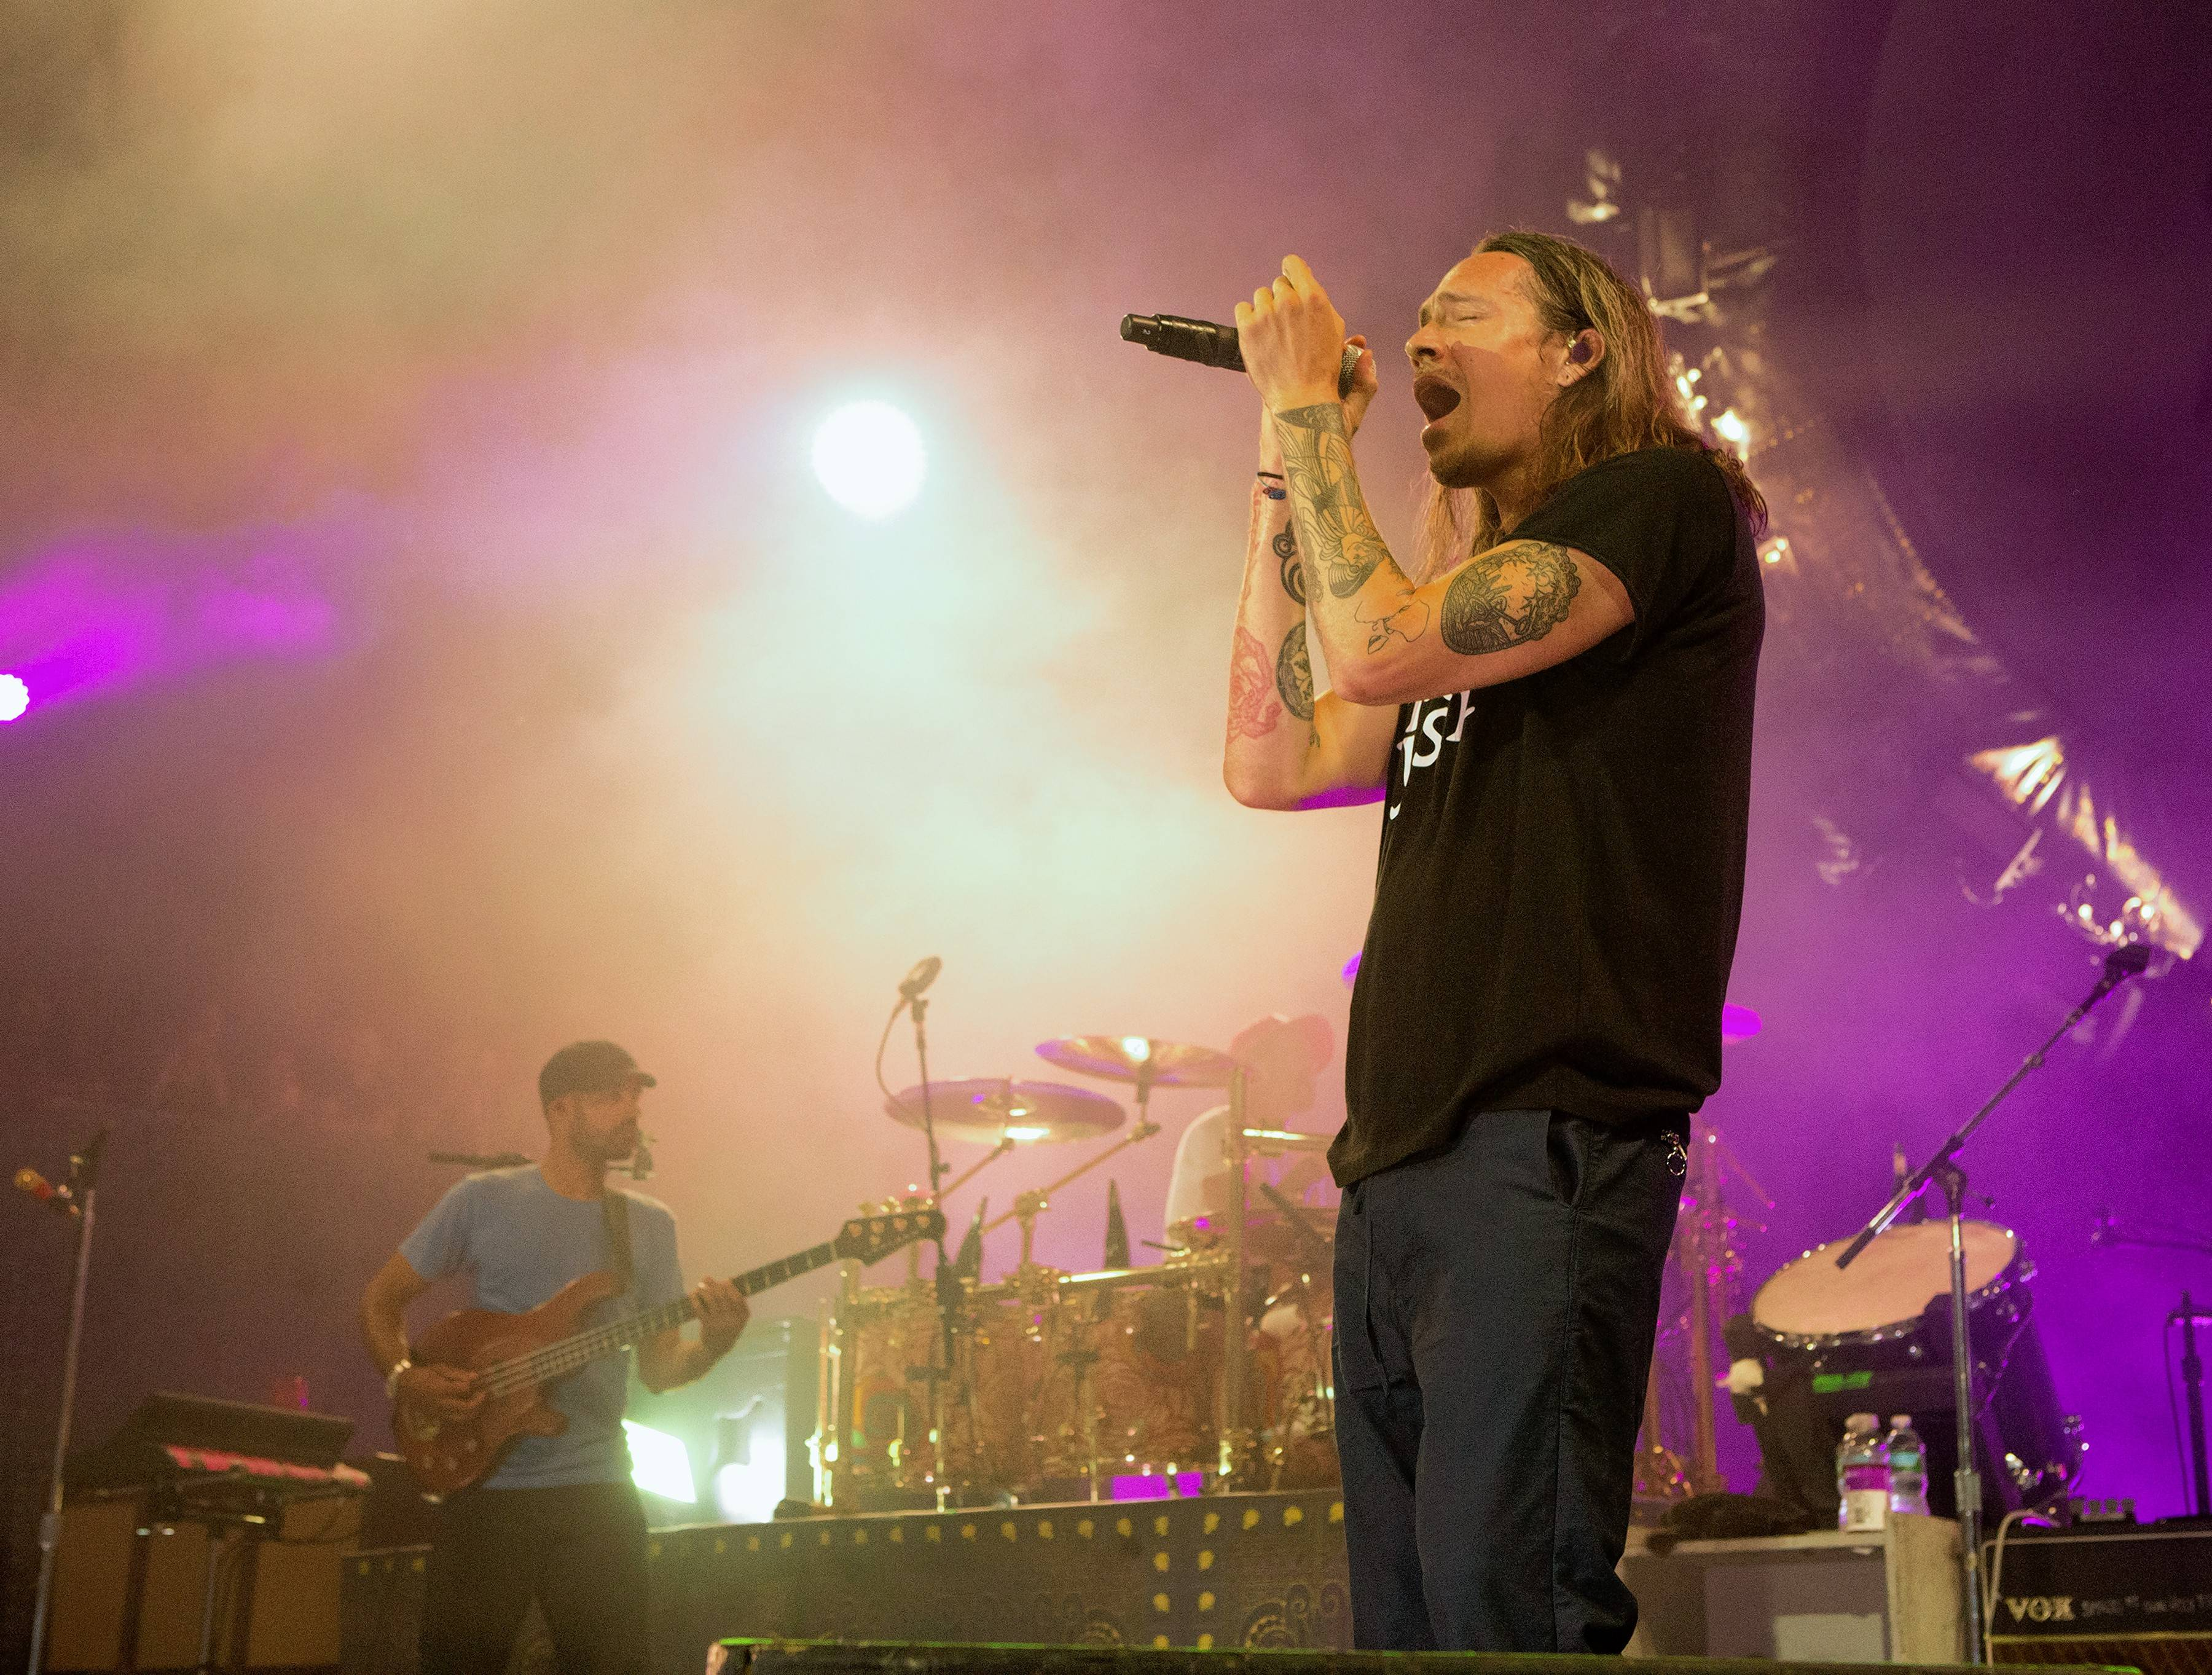 Incubus headlines a show with Jimmy Eat World at the Hollywood Casino Amphitheatre Saturday, July 29.